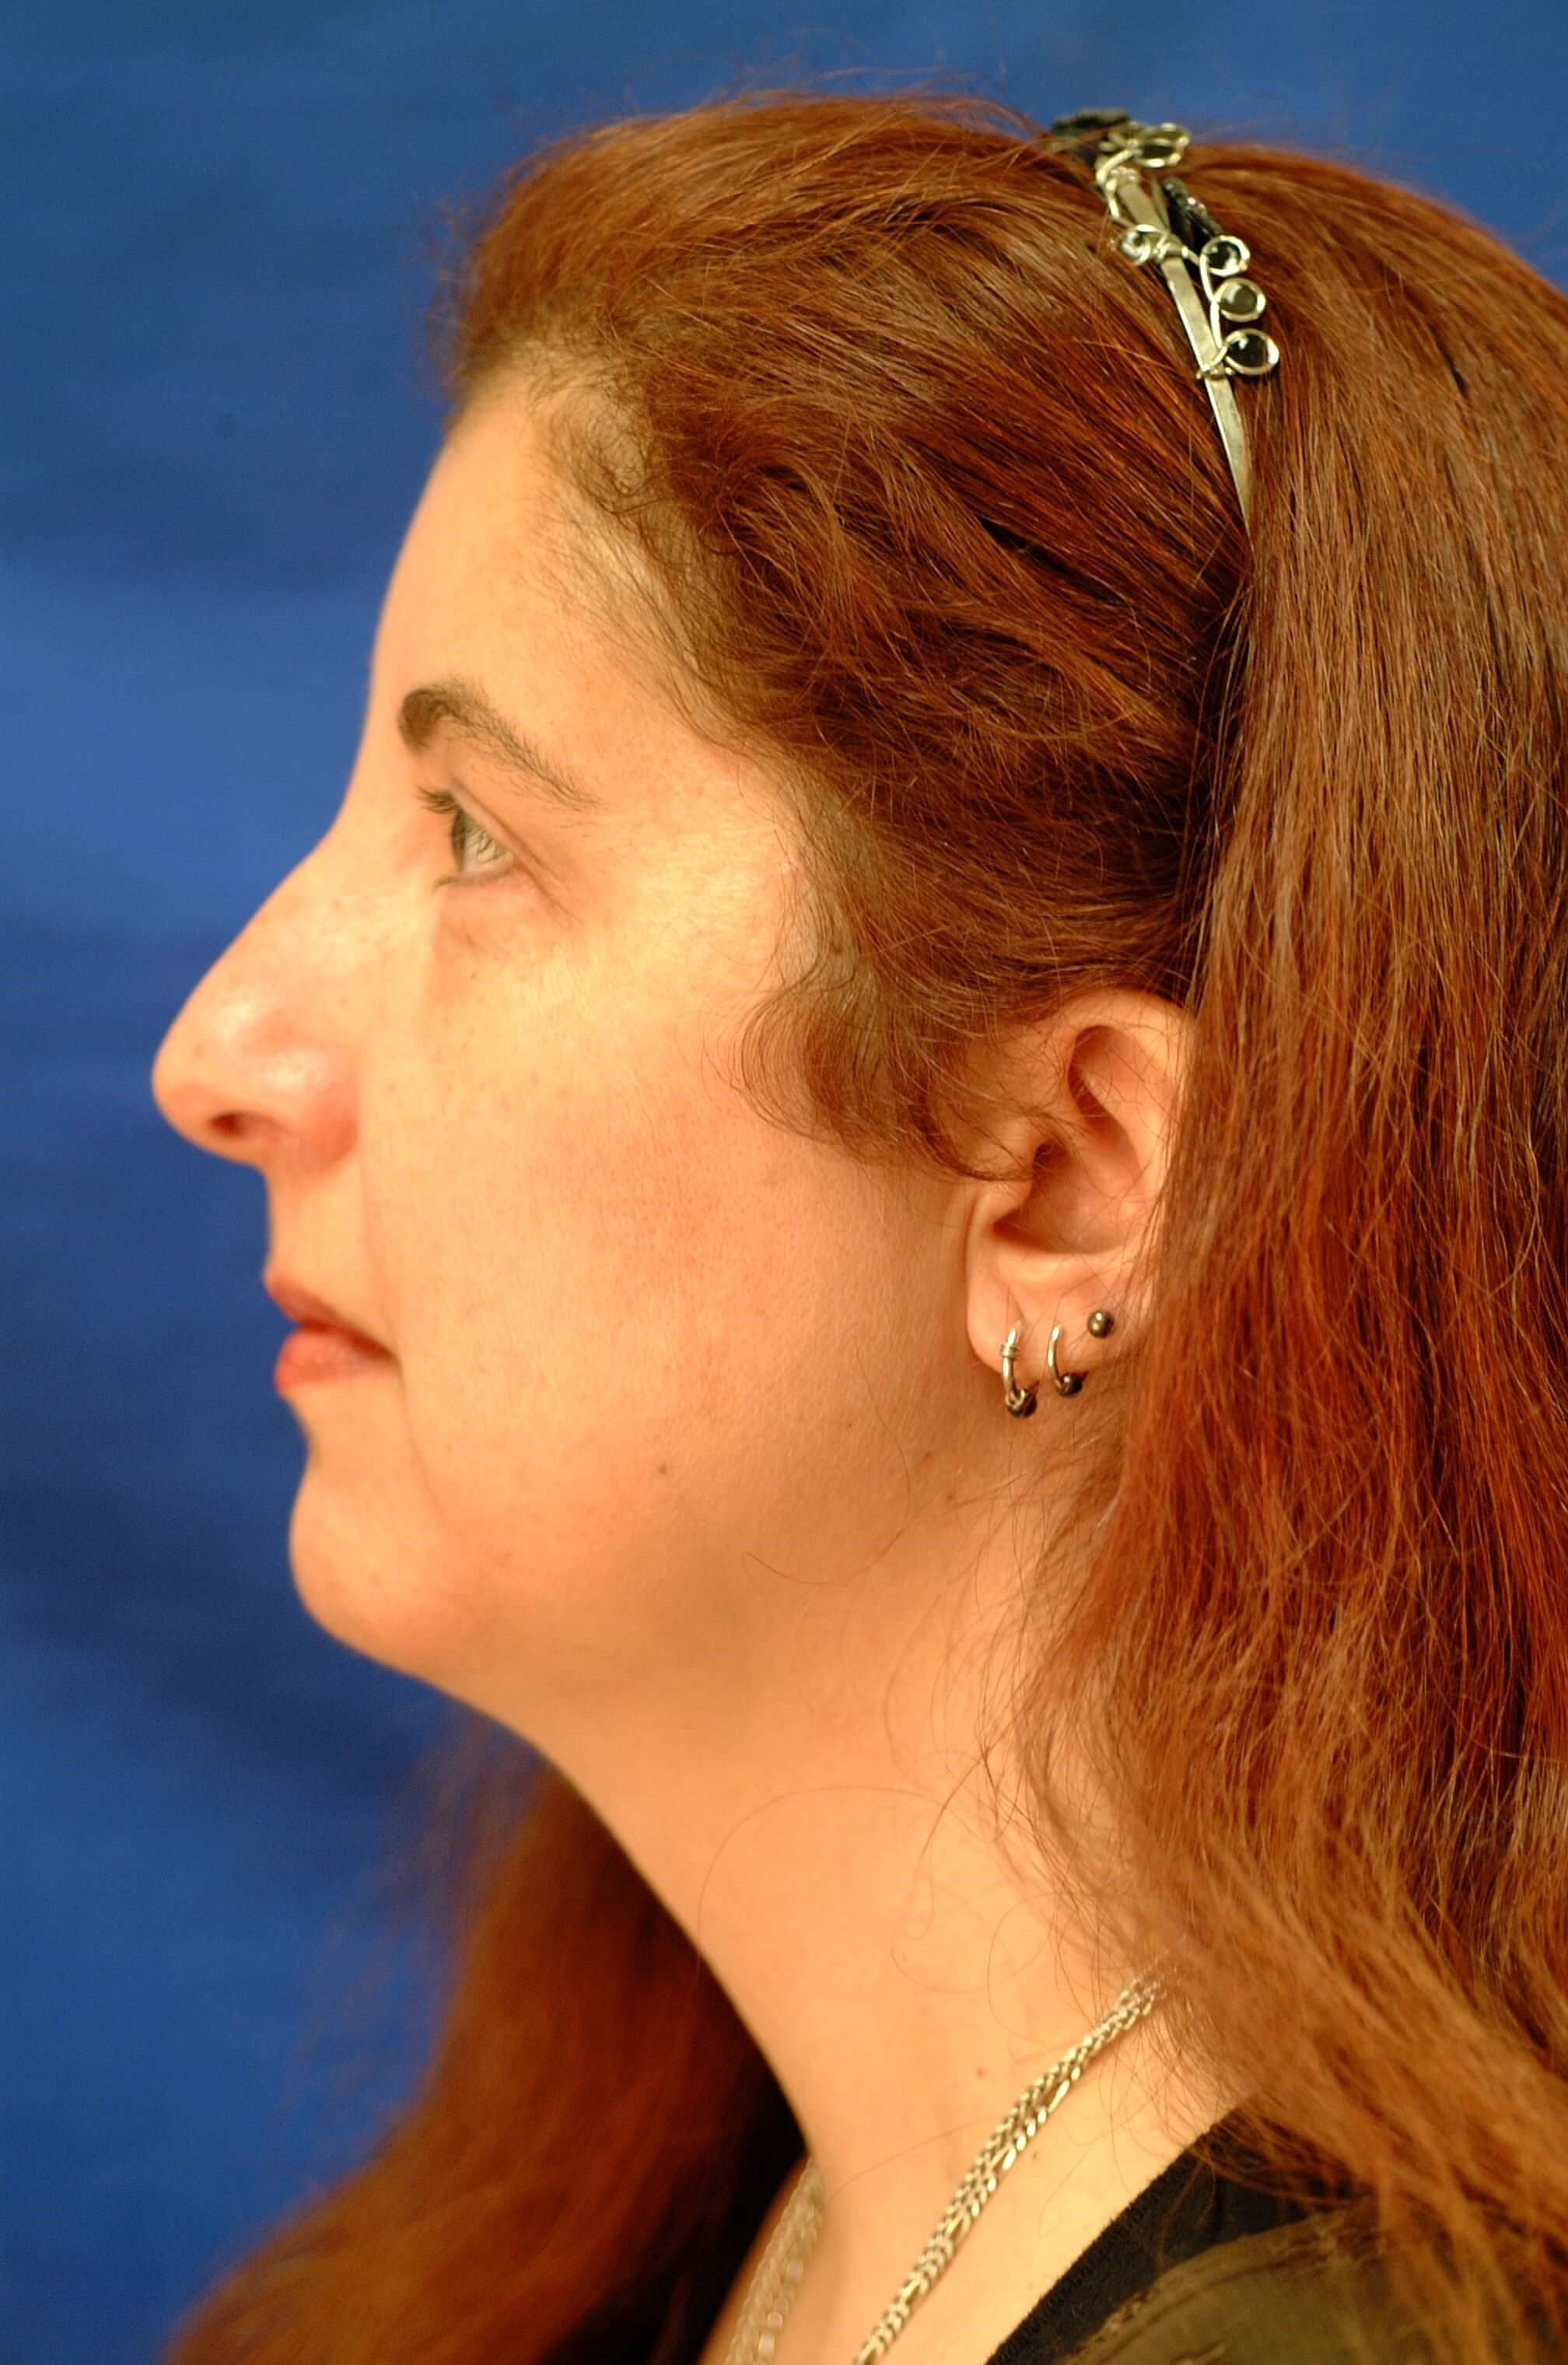 Dr. Bunkis Facial Rejuvenation After Side View